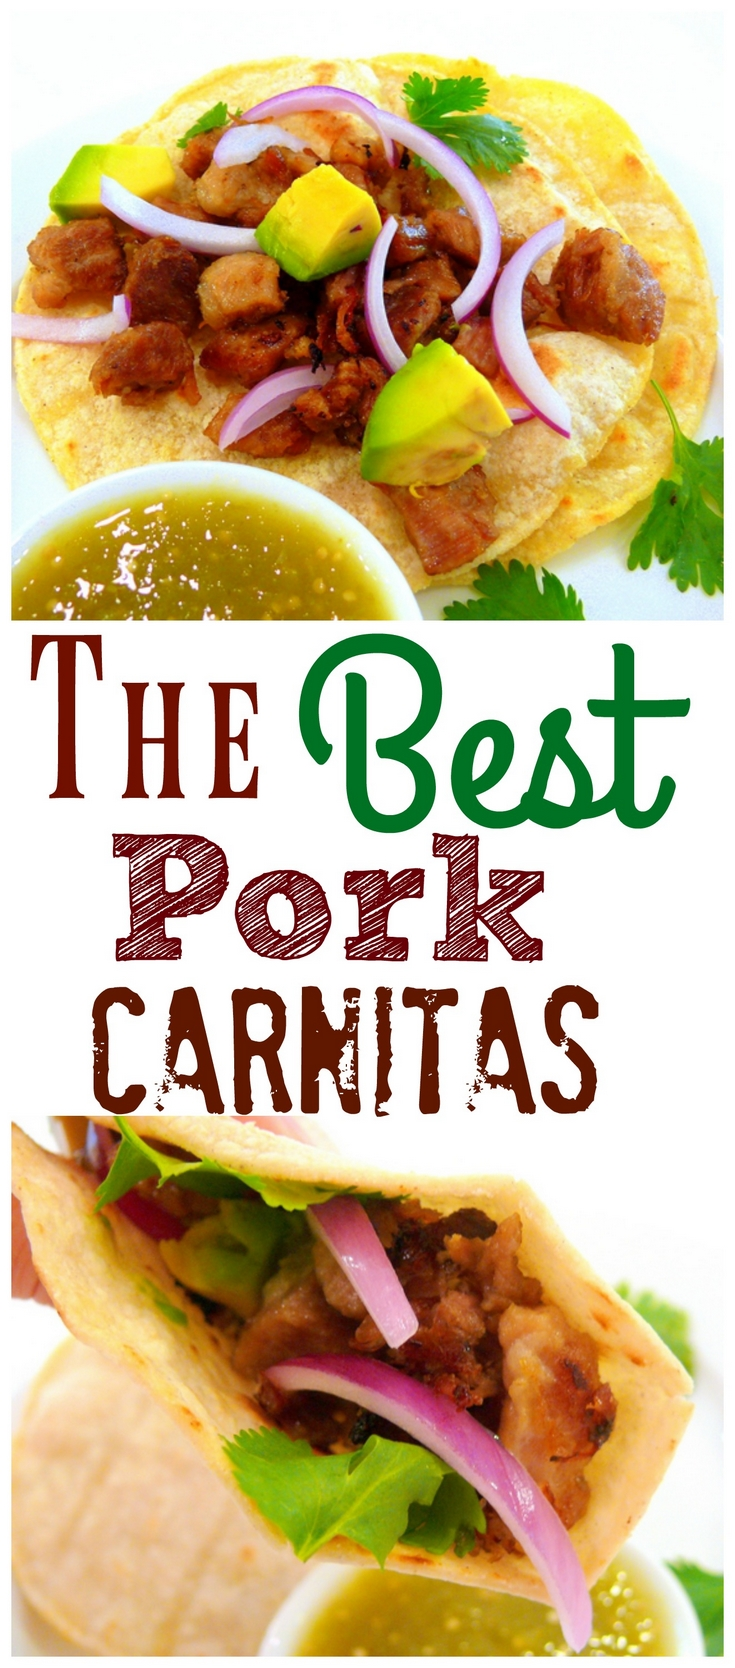 The Best Pork Carnitas are so easy to make they are perfect for a weeknight dinner. Make them for Cinco de Mayo for a delicious, authentic meal. #noblepig #carnitas #tacos #mexican #pork via @cmpollak1